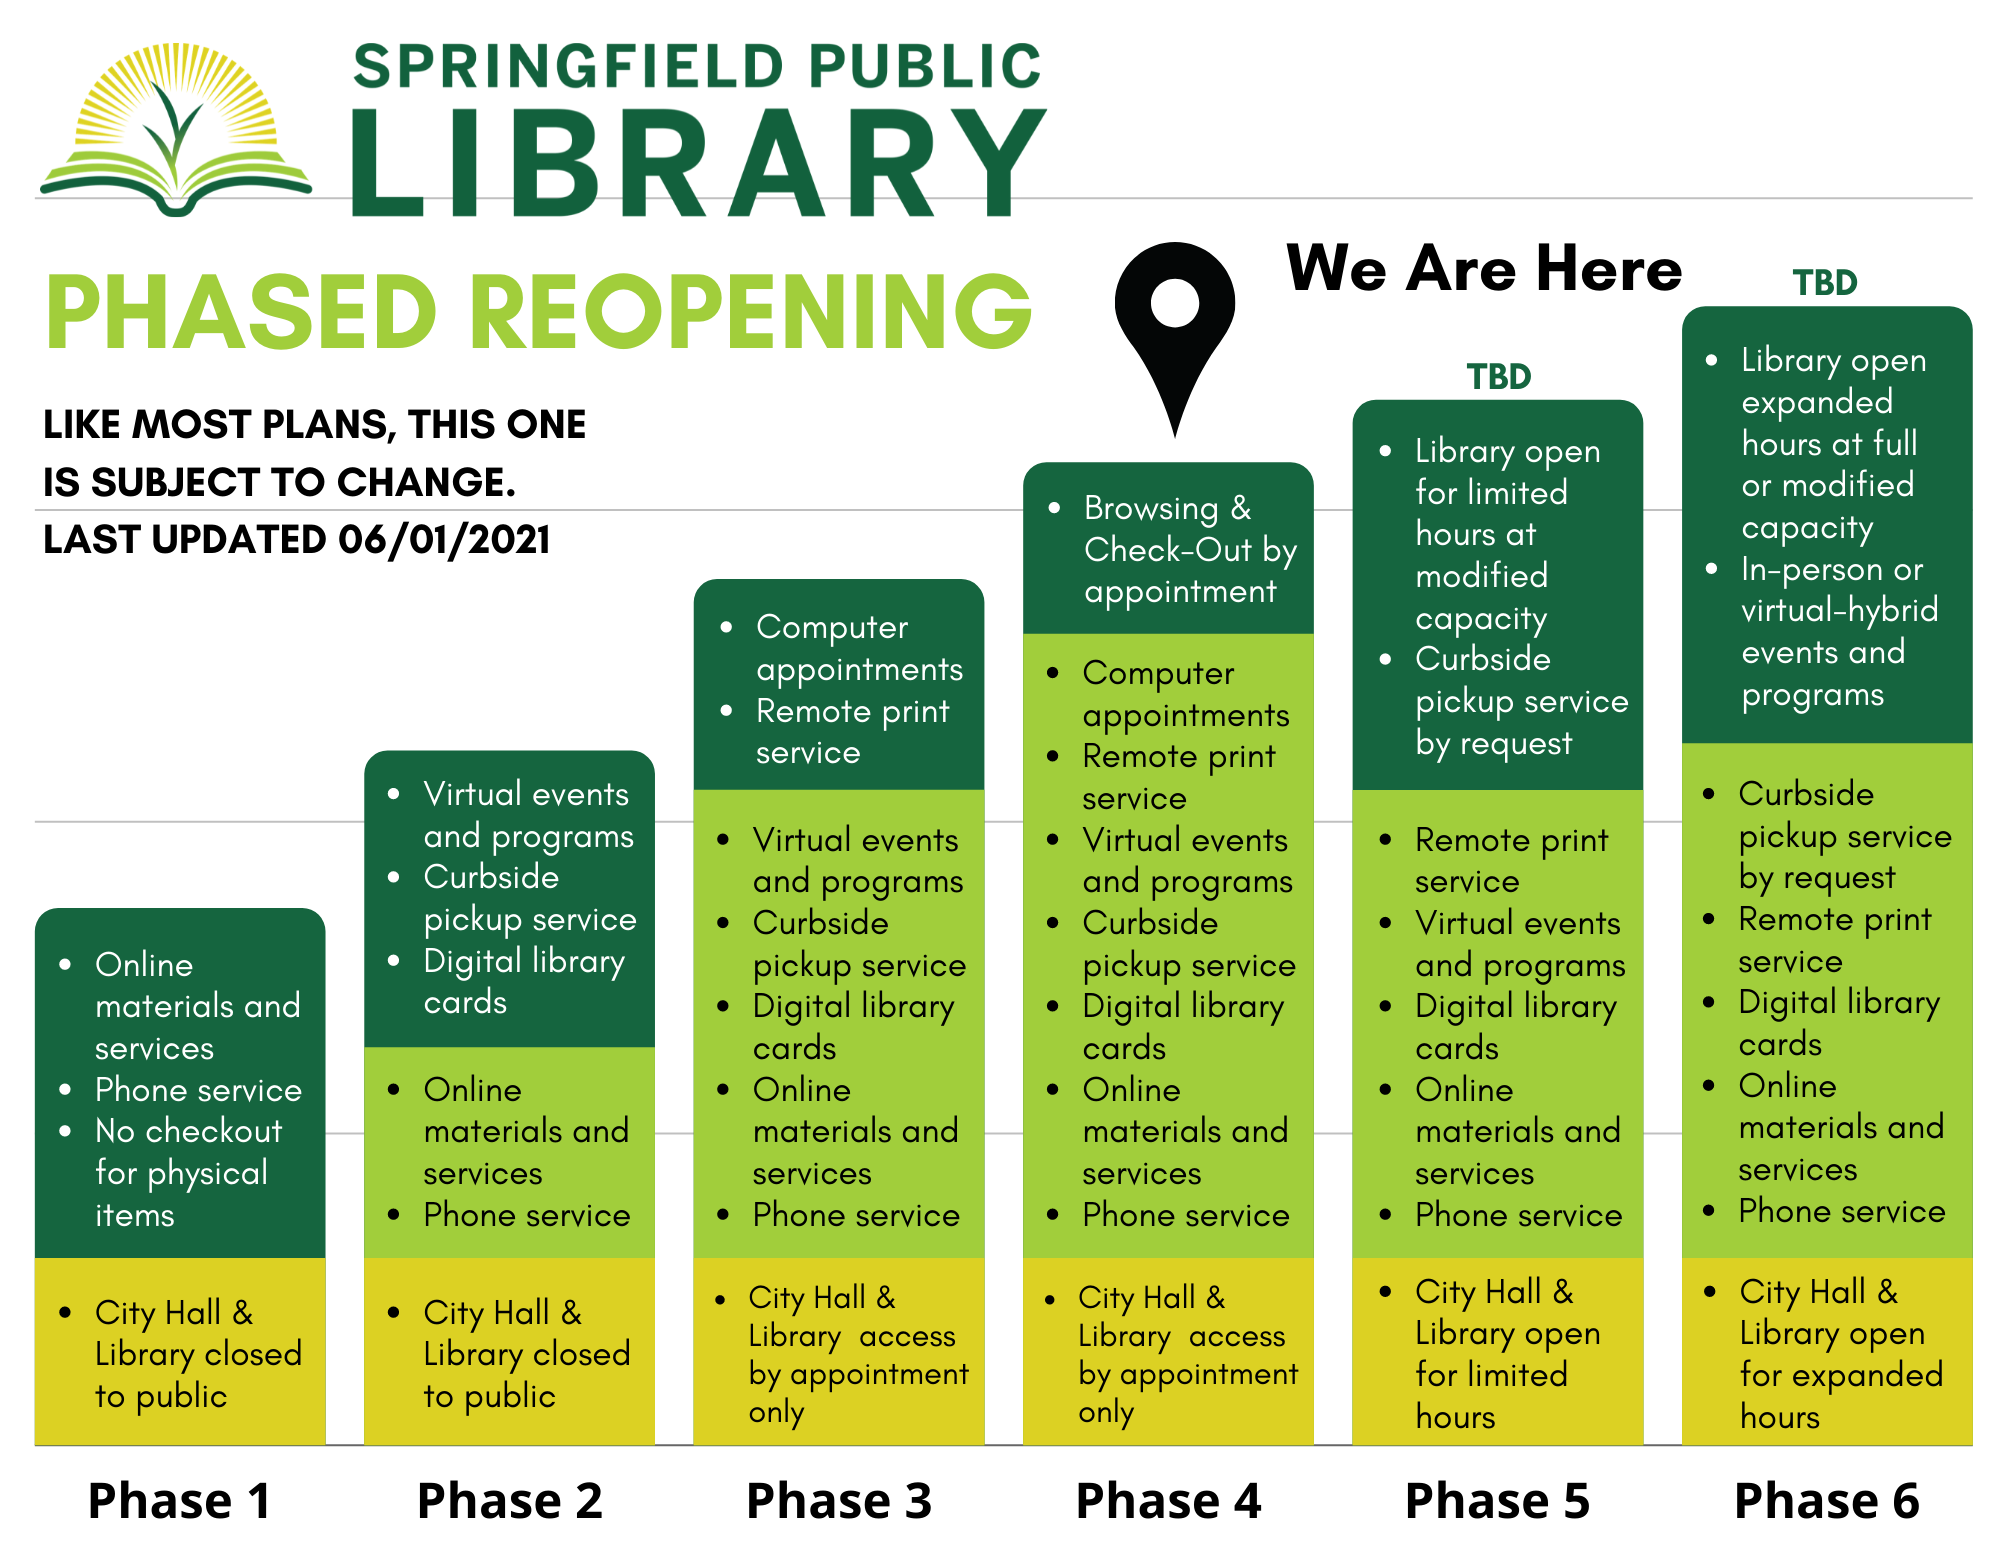 Springfield Public Library phased reopening plan.  We are now in phase 4